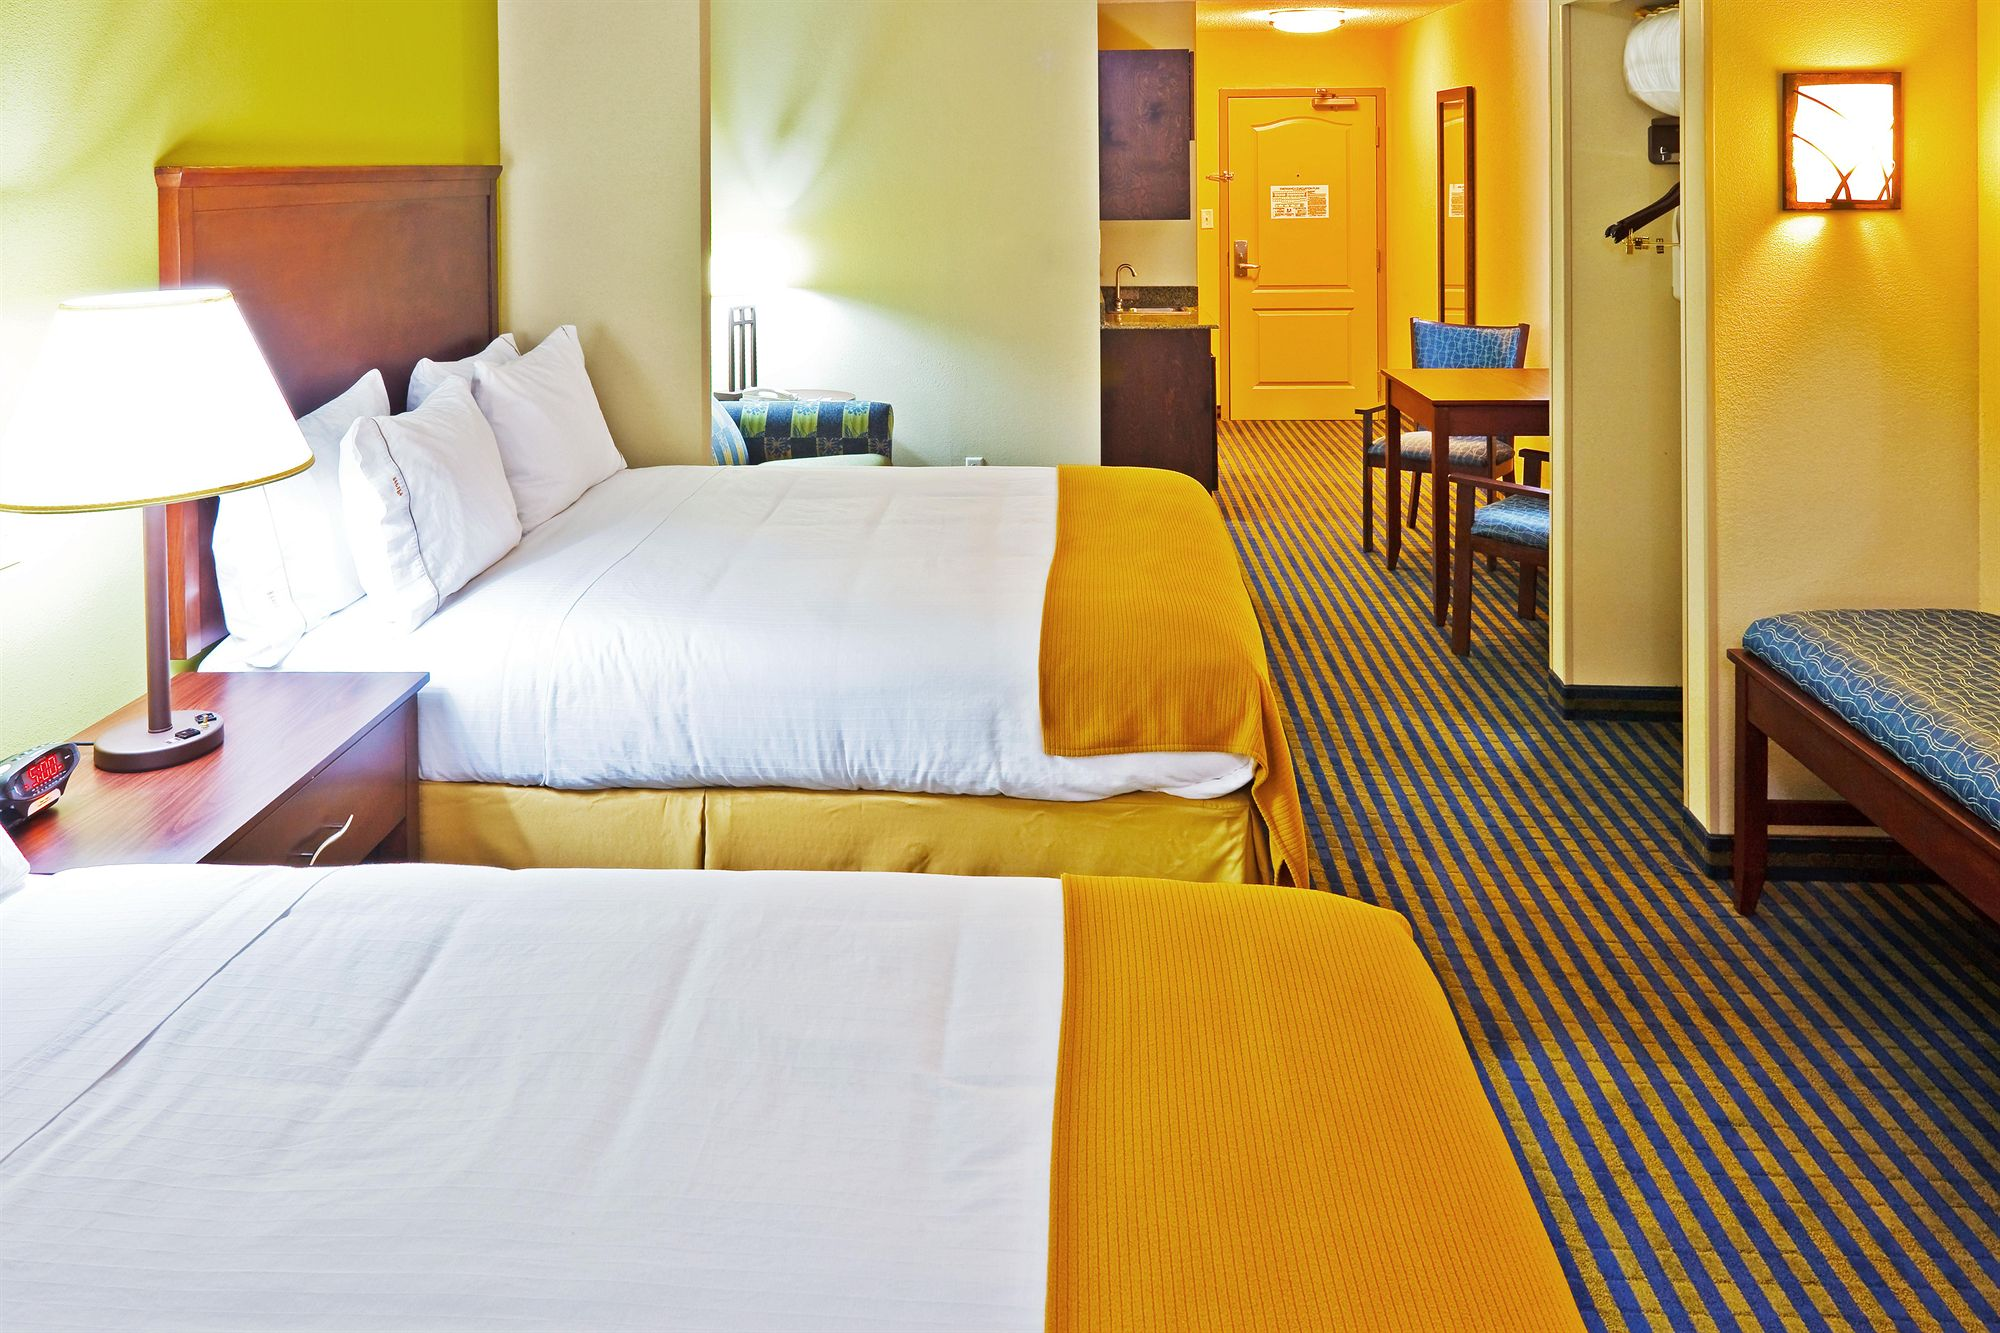 Holiday Inn Express Hotel Ooltewah Springs-Chattanooga in Ooltewah, TN